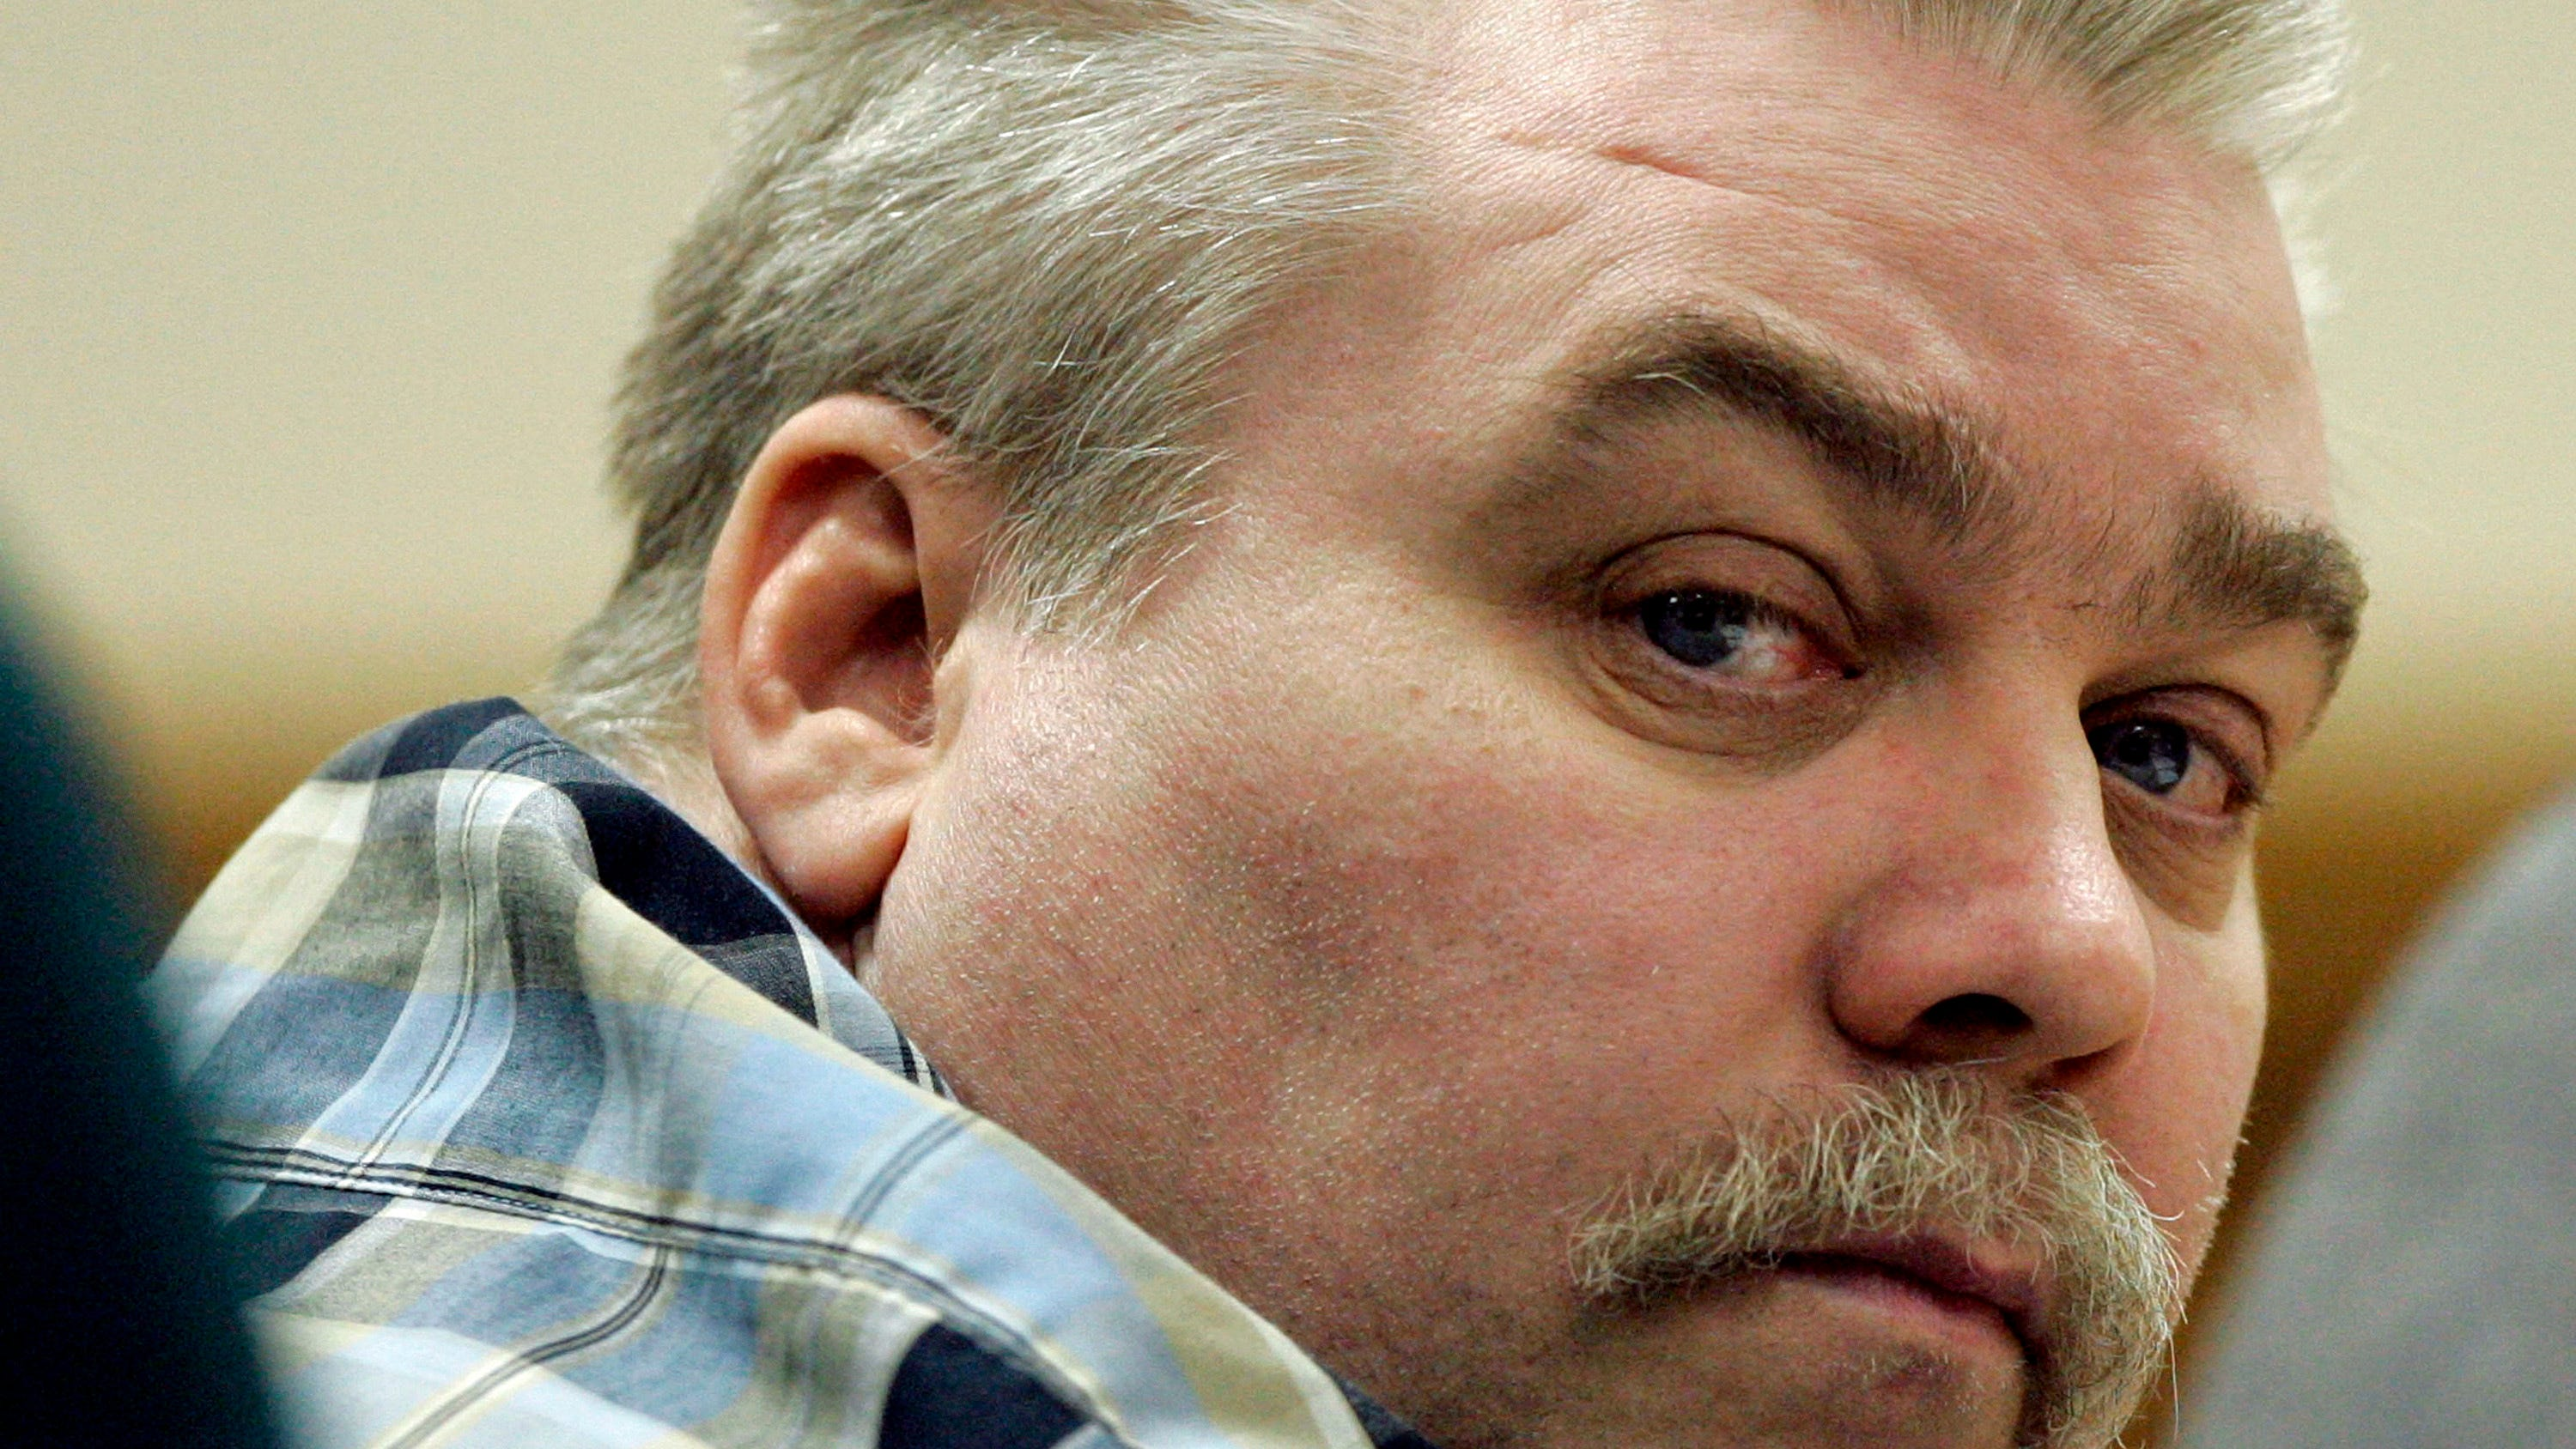 Court nixes new trial for 'Making a Murderer' subject Avery